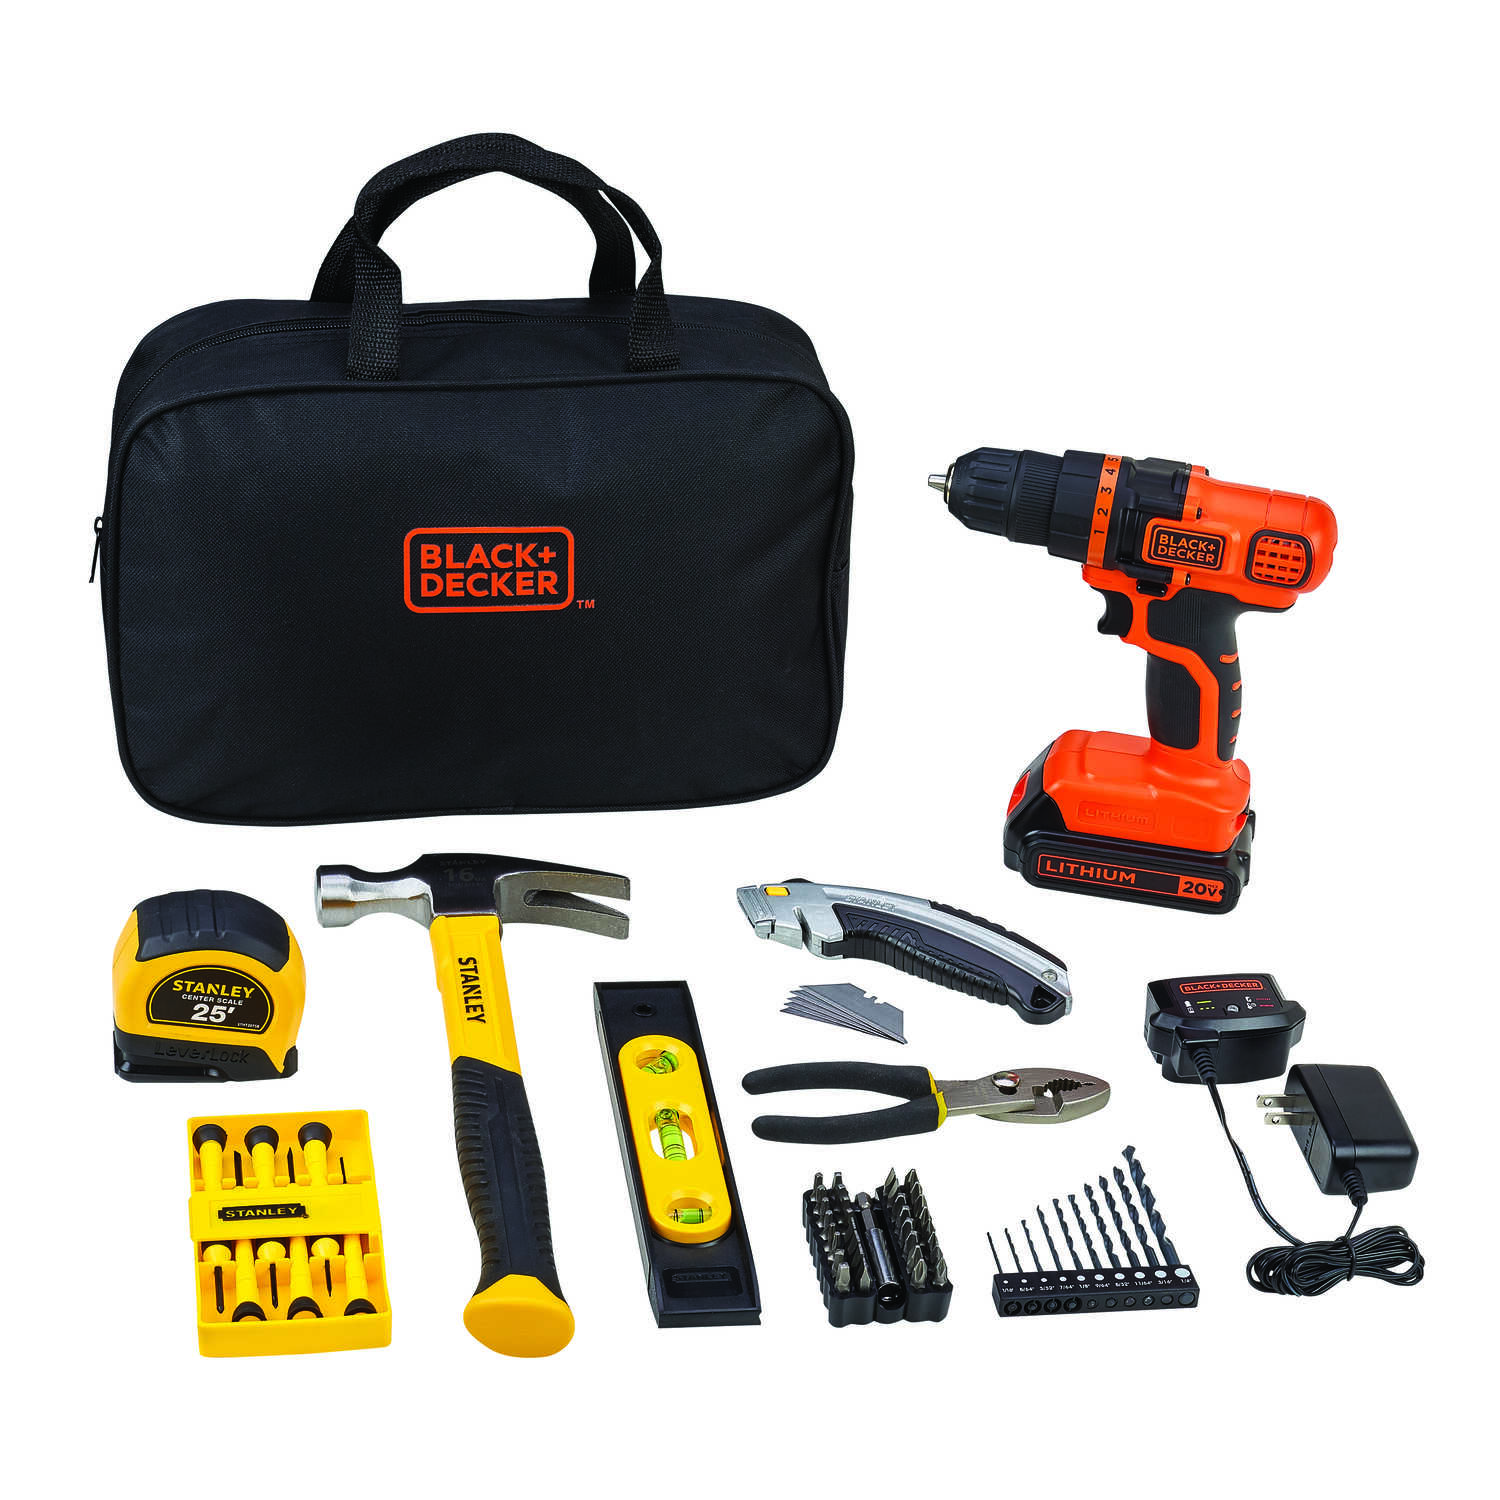 Black and Decker  Stanley  Cordless  66 tool Drill Driver and Home Project Kit  20 volt